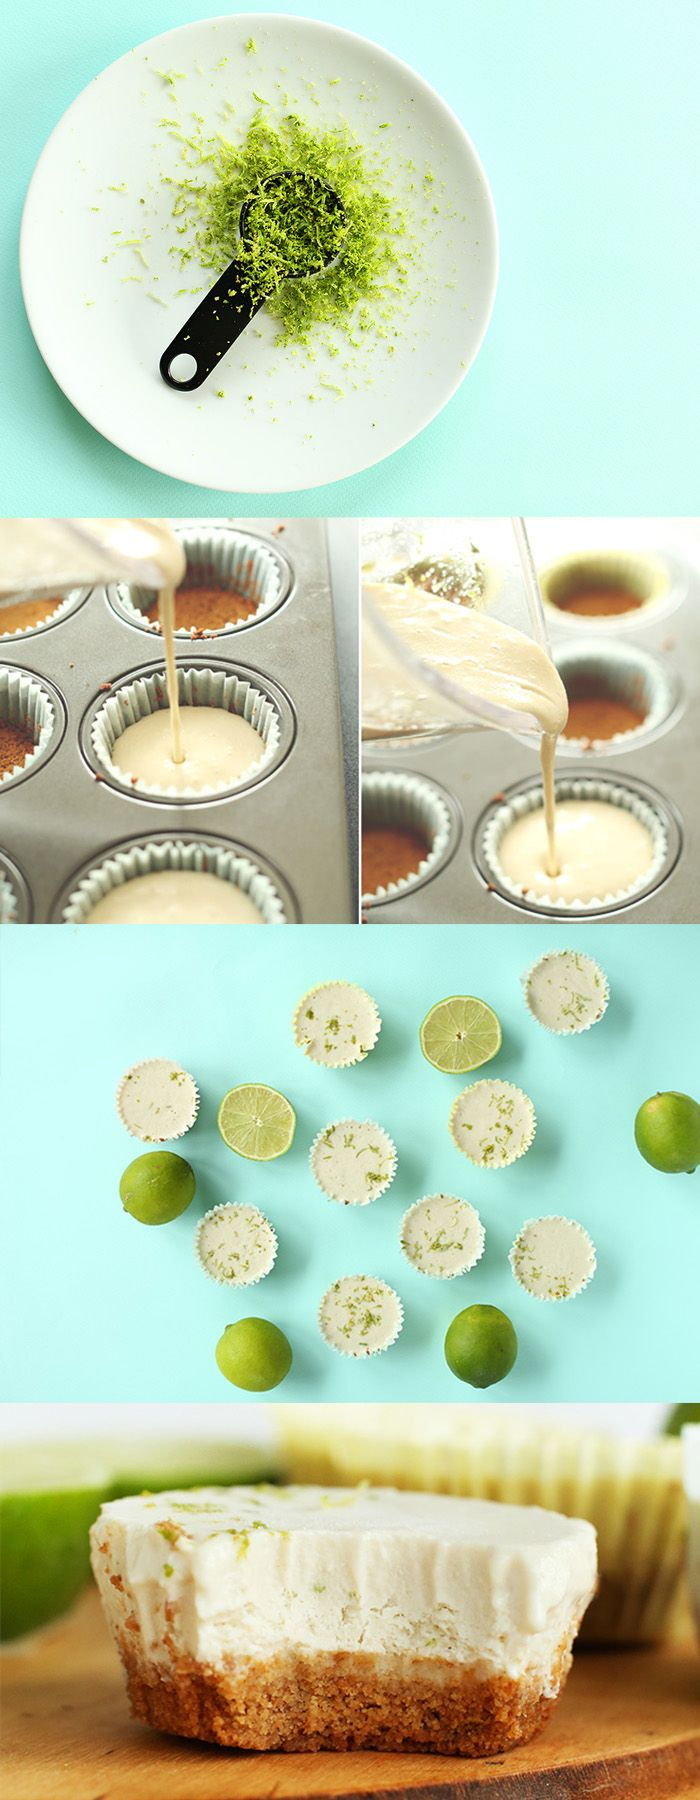 7 Ingredient Vegan Key Lime Pie Bites! Super easy + so creamy and delicious! | #vegan (#glutenfree optional)